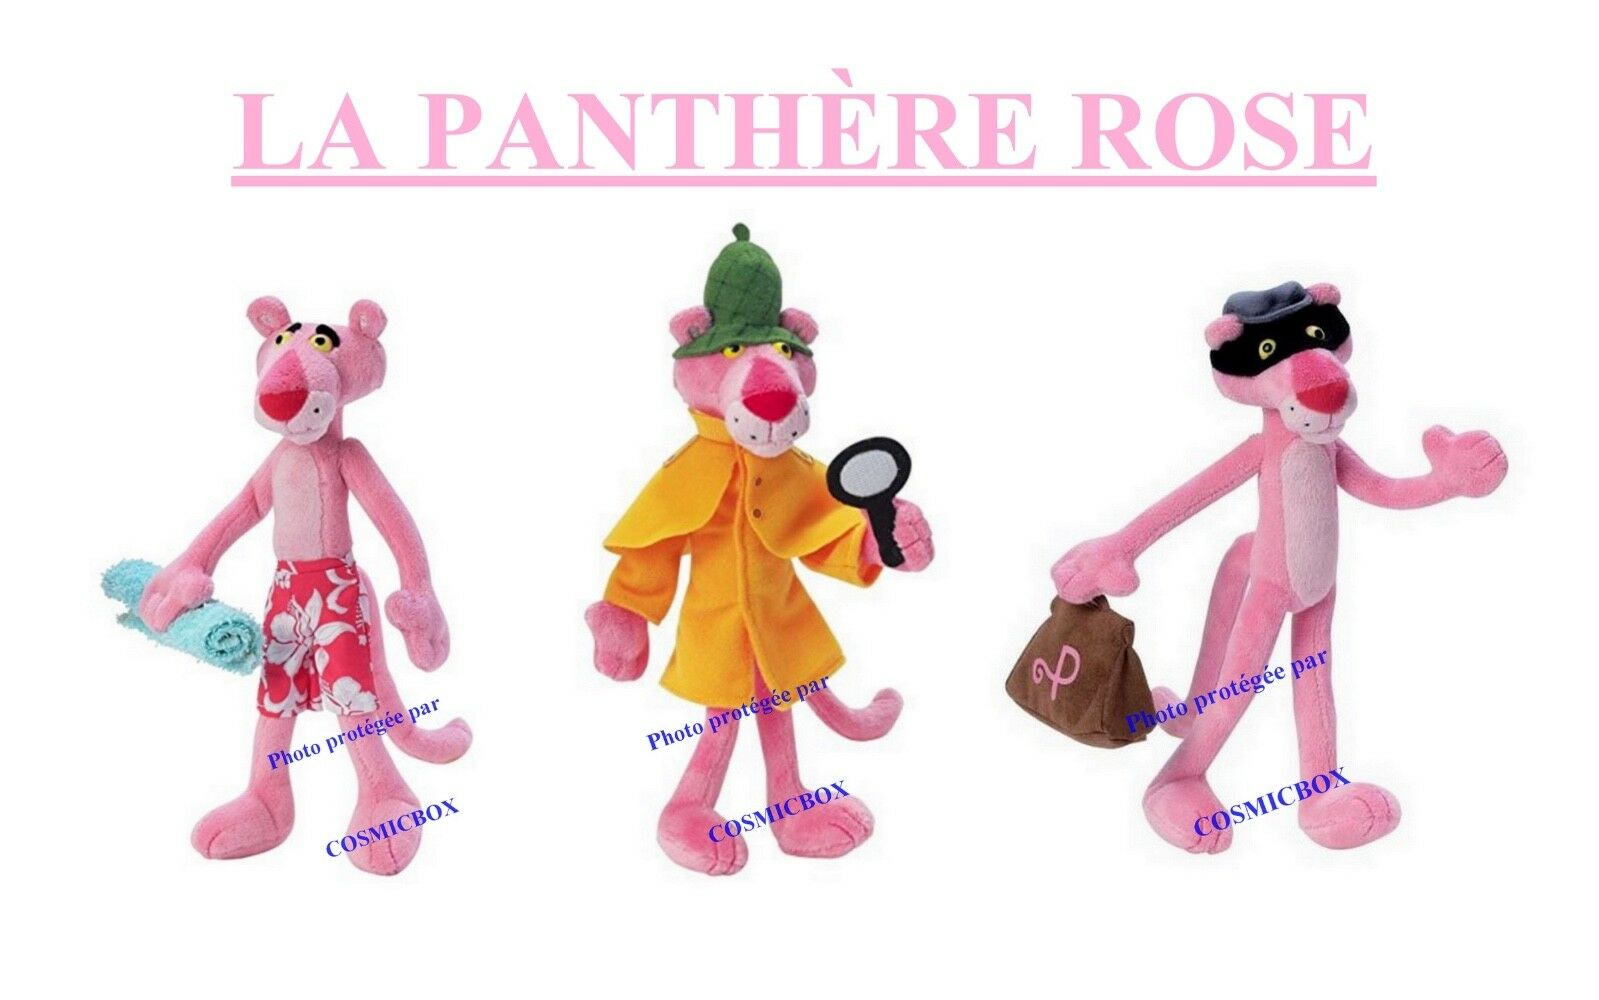 Lot 3 peluches La PANTHERE ROSE jemini 24cm prize of Rosa PANTHER plush figures